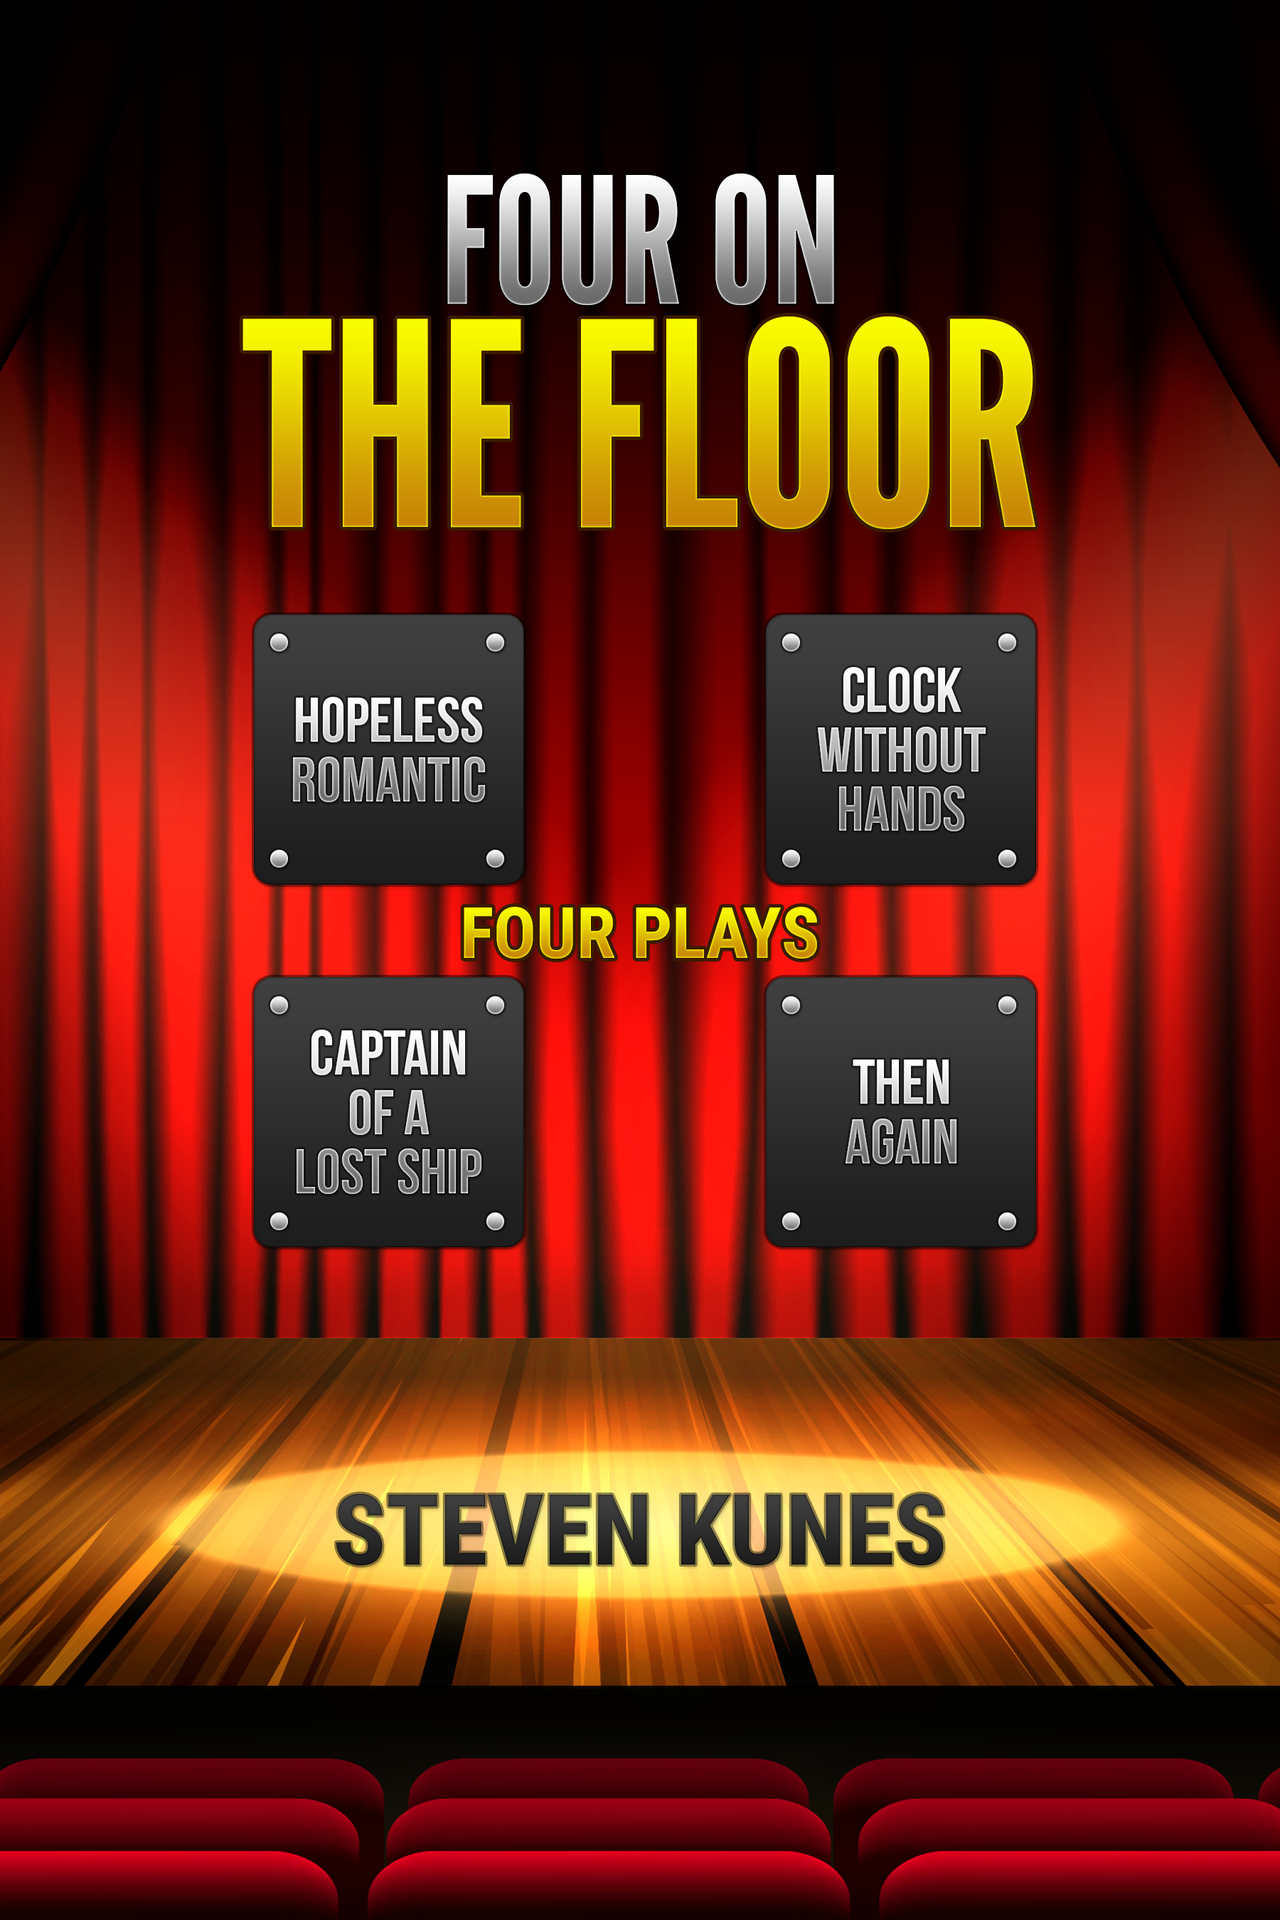 Four on the floor book cover